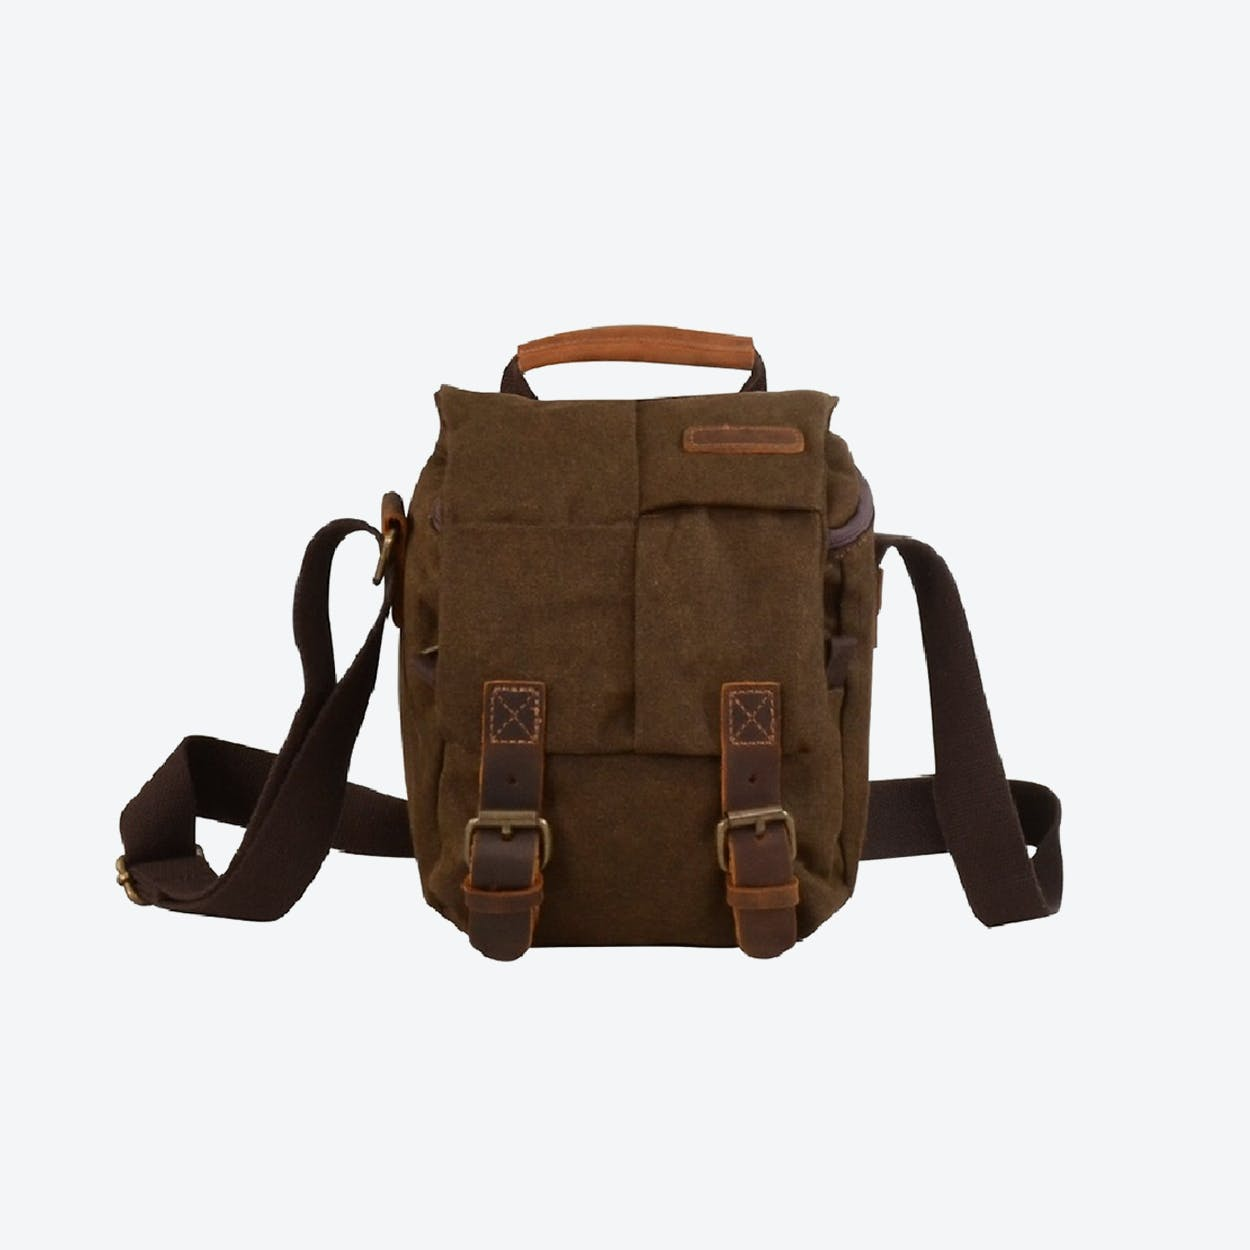 Compact Canvas Leather Dslr Camera Bag in Brown